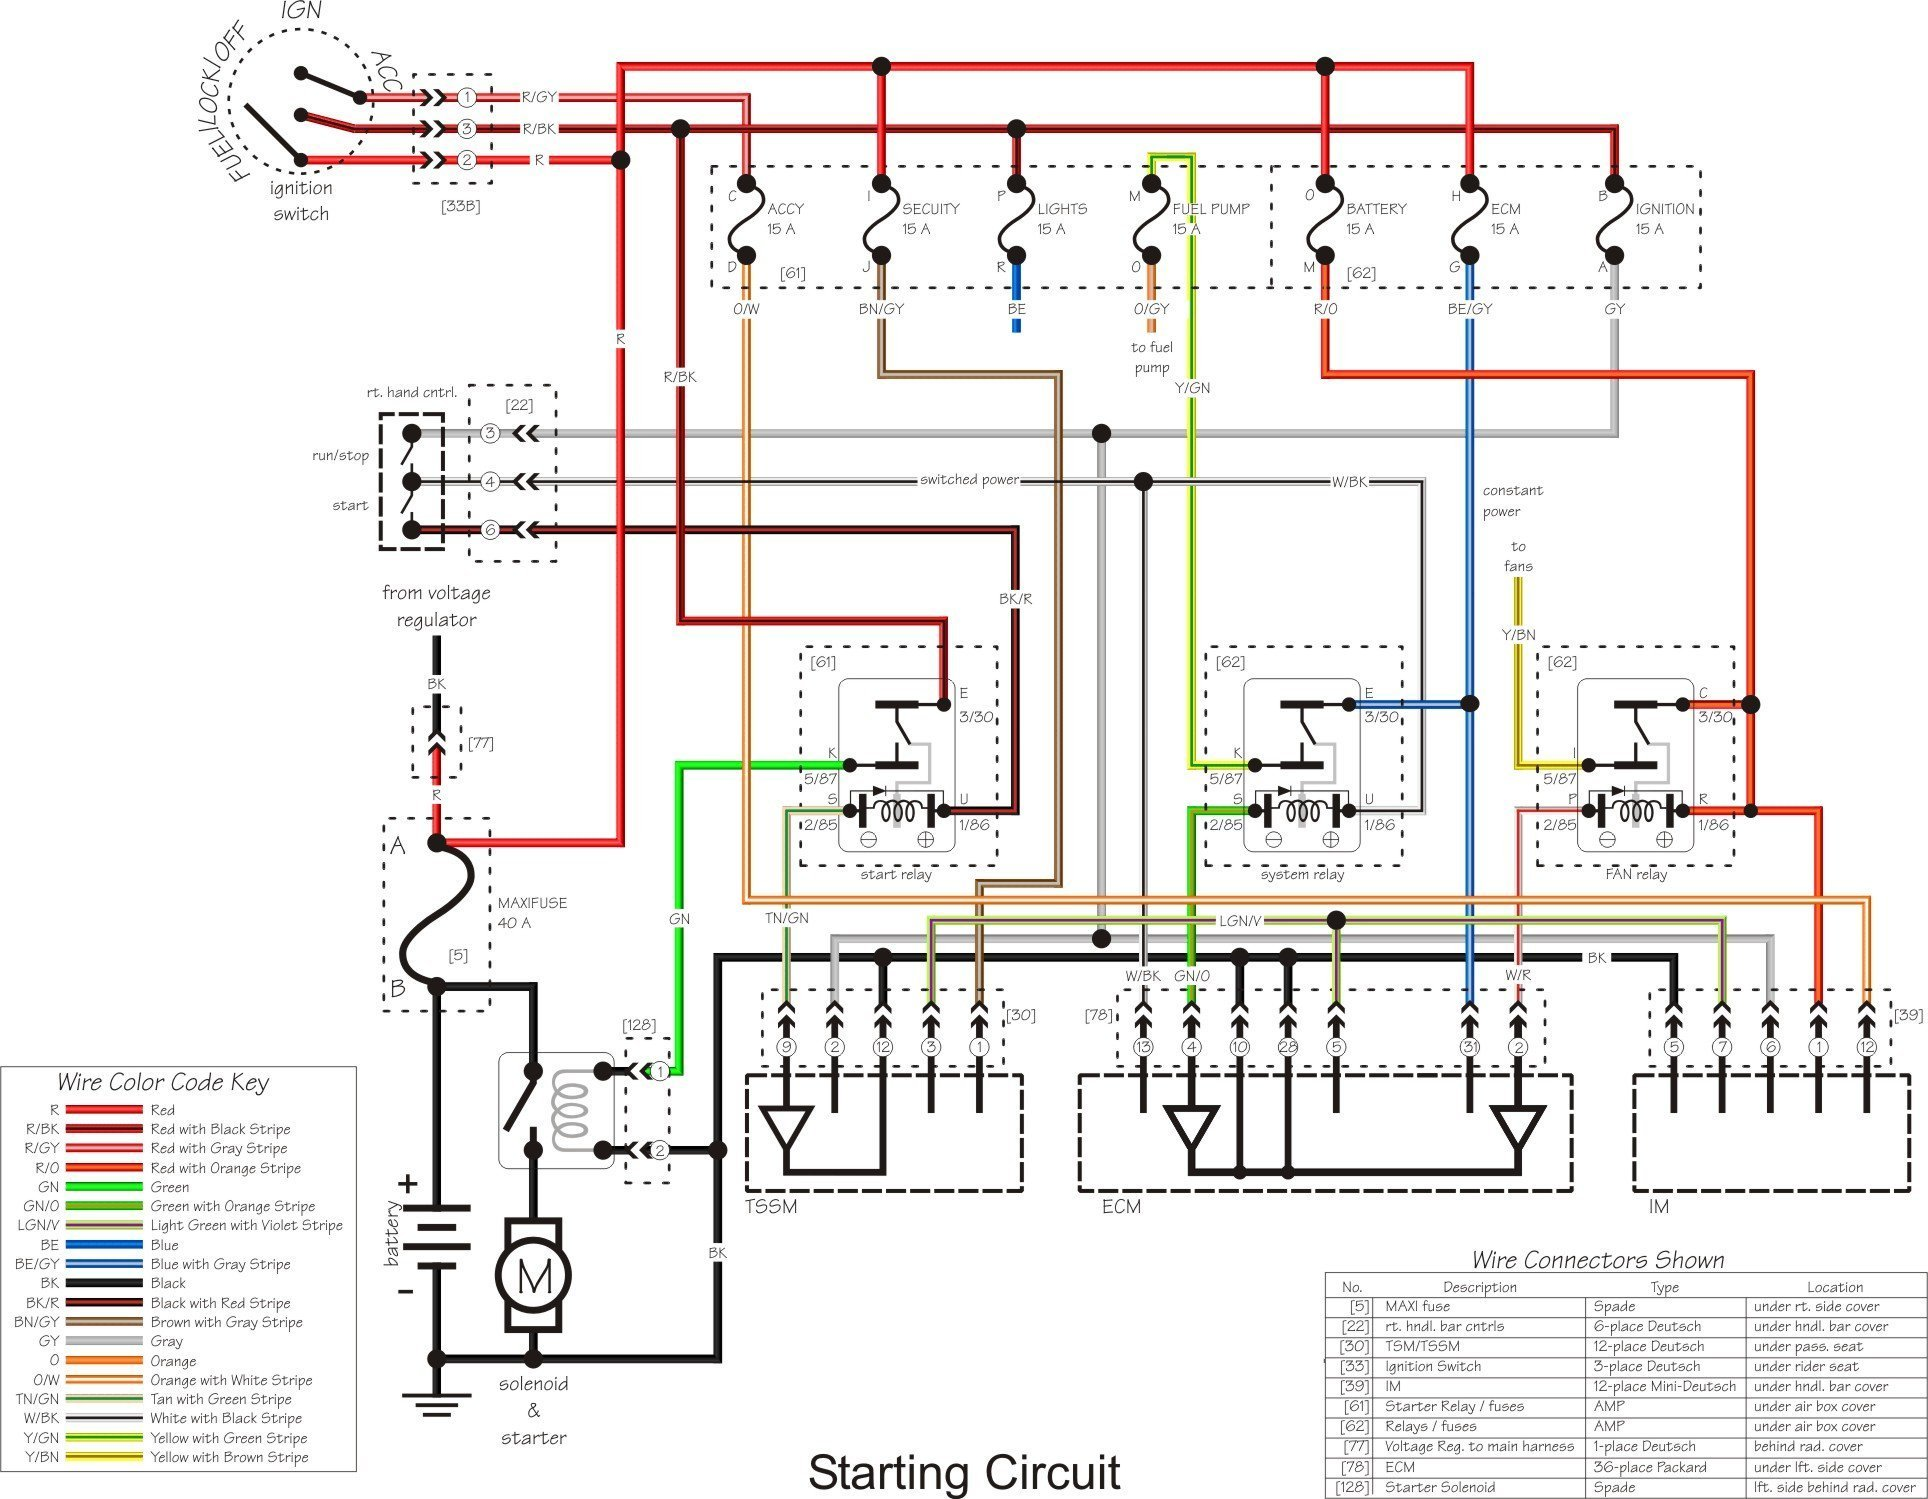 Ignition wiring diagram - 1130cc.com: The #1 Harley Davidson V-Rod Forum. »